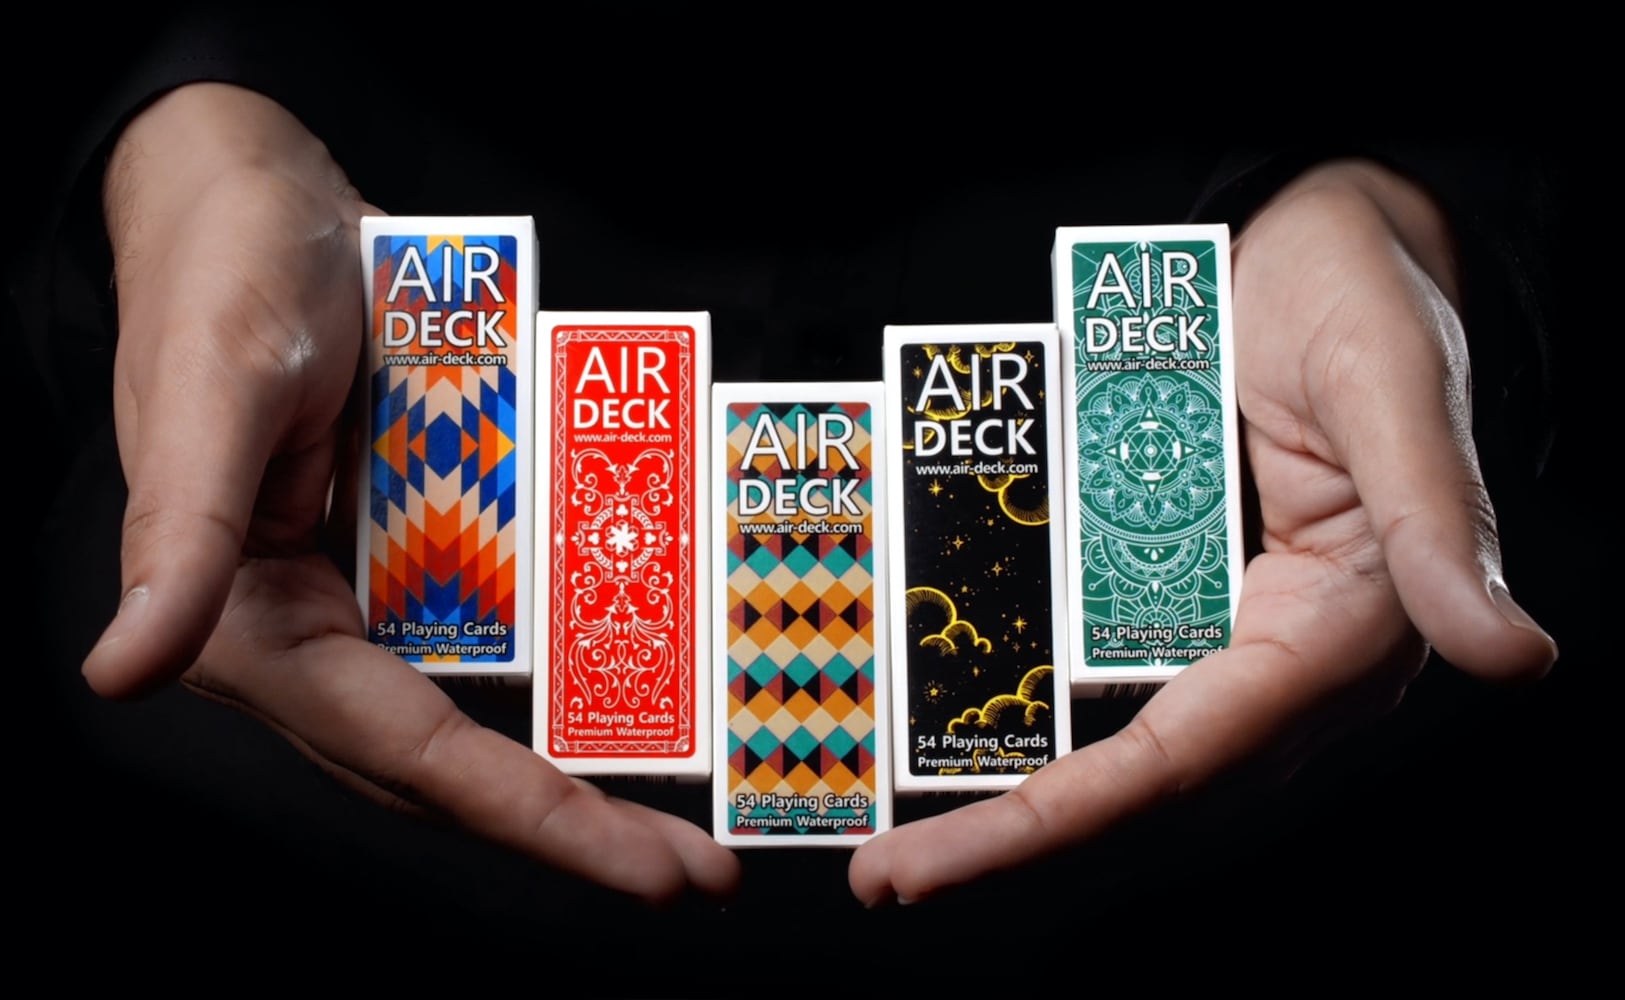 Air Deck 3.0 Travel-Optimized Playing Cards are durably made for taking and playing anywhere